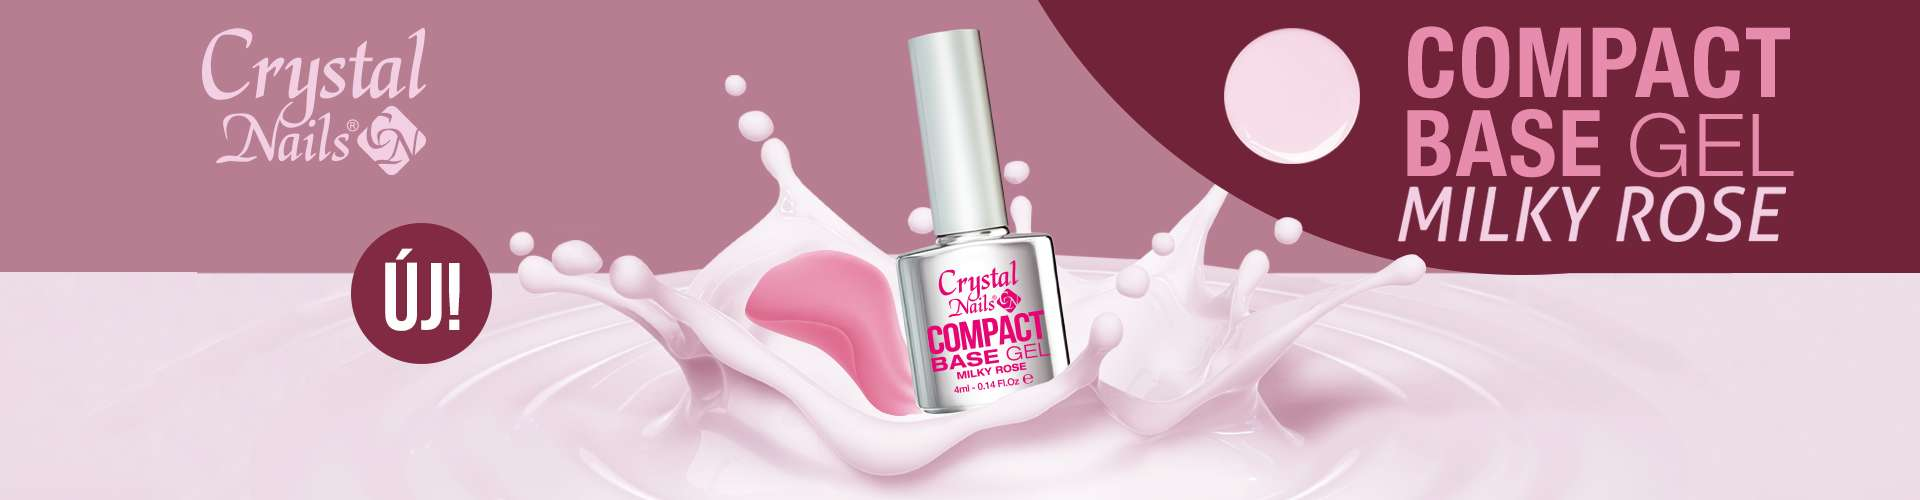 143_milky_rose_compact_base_gel